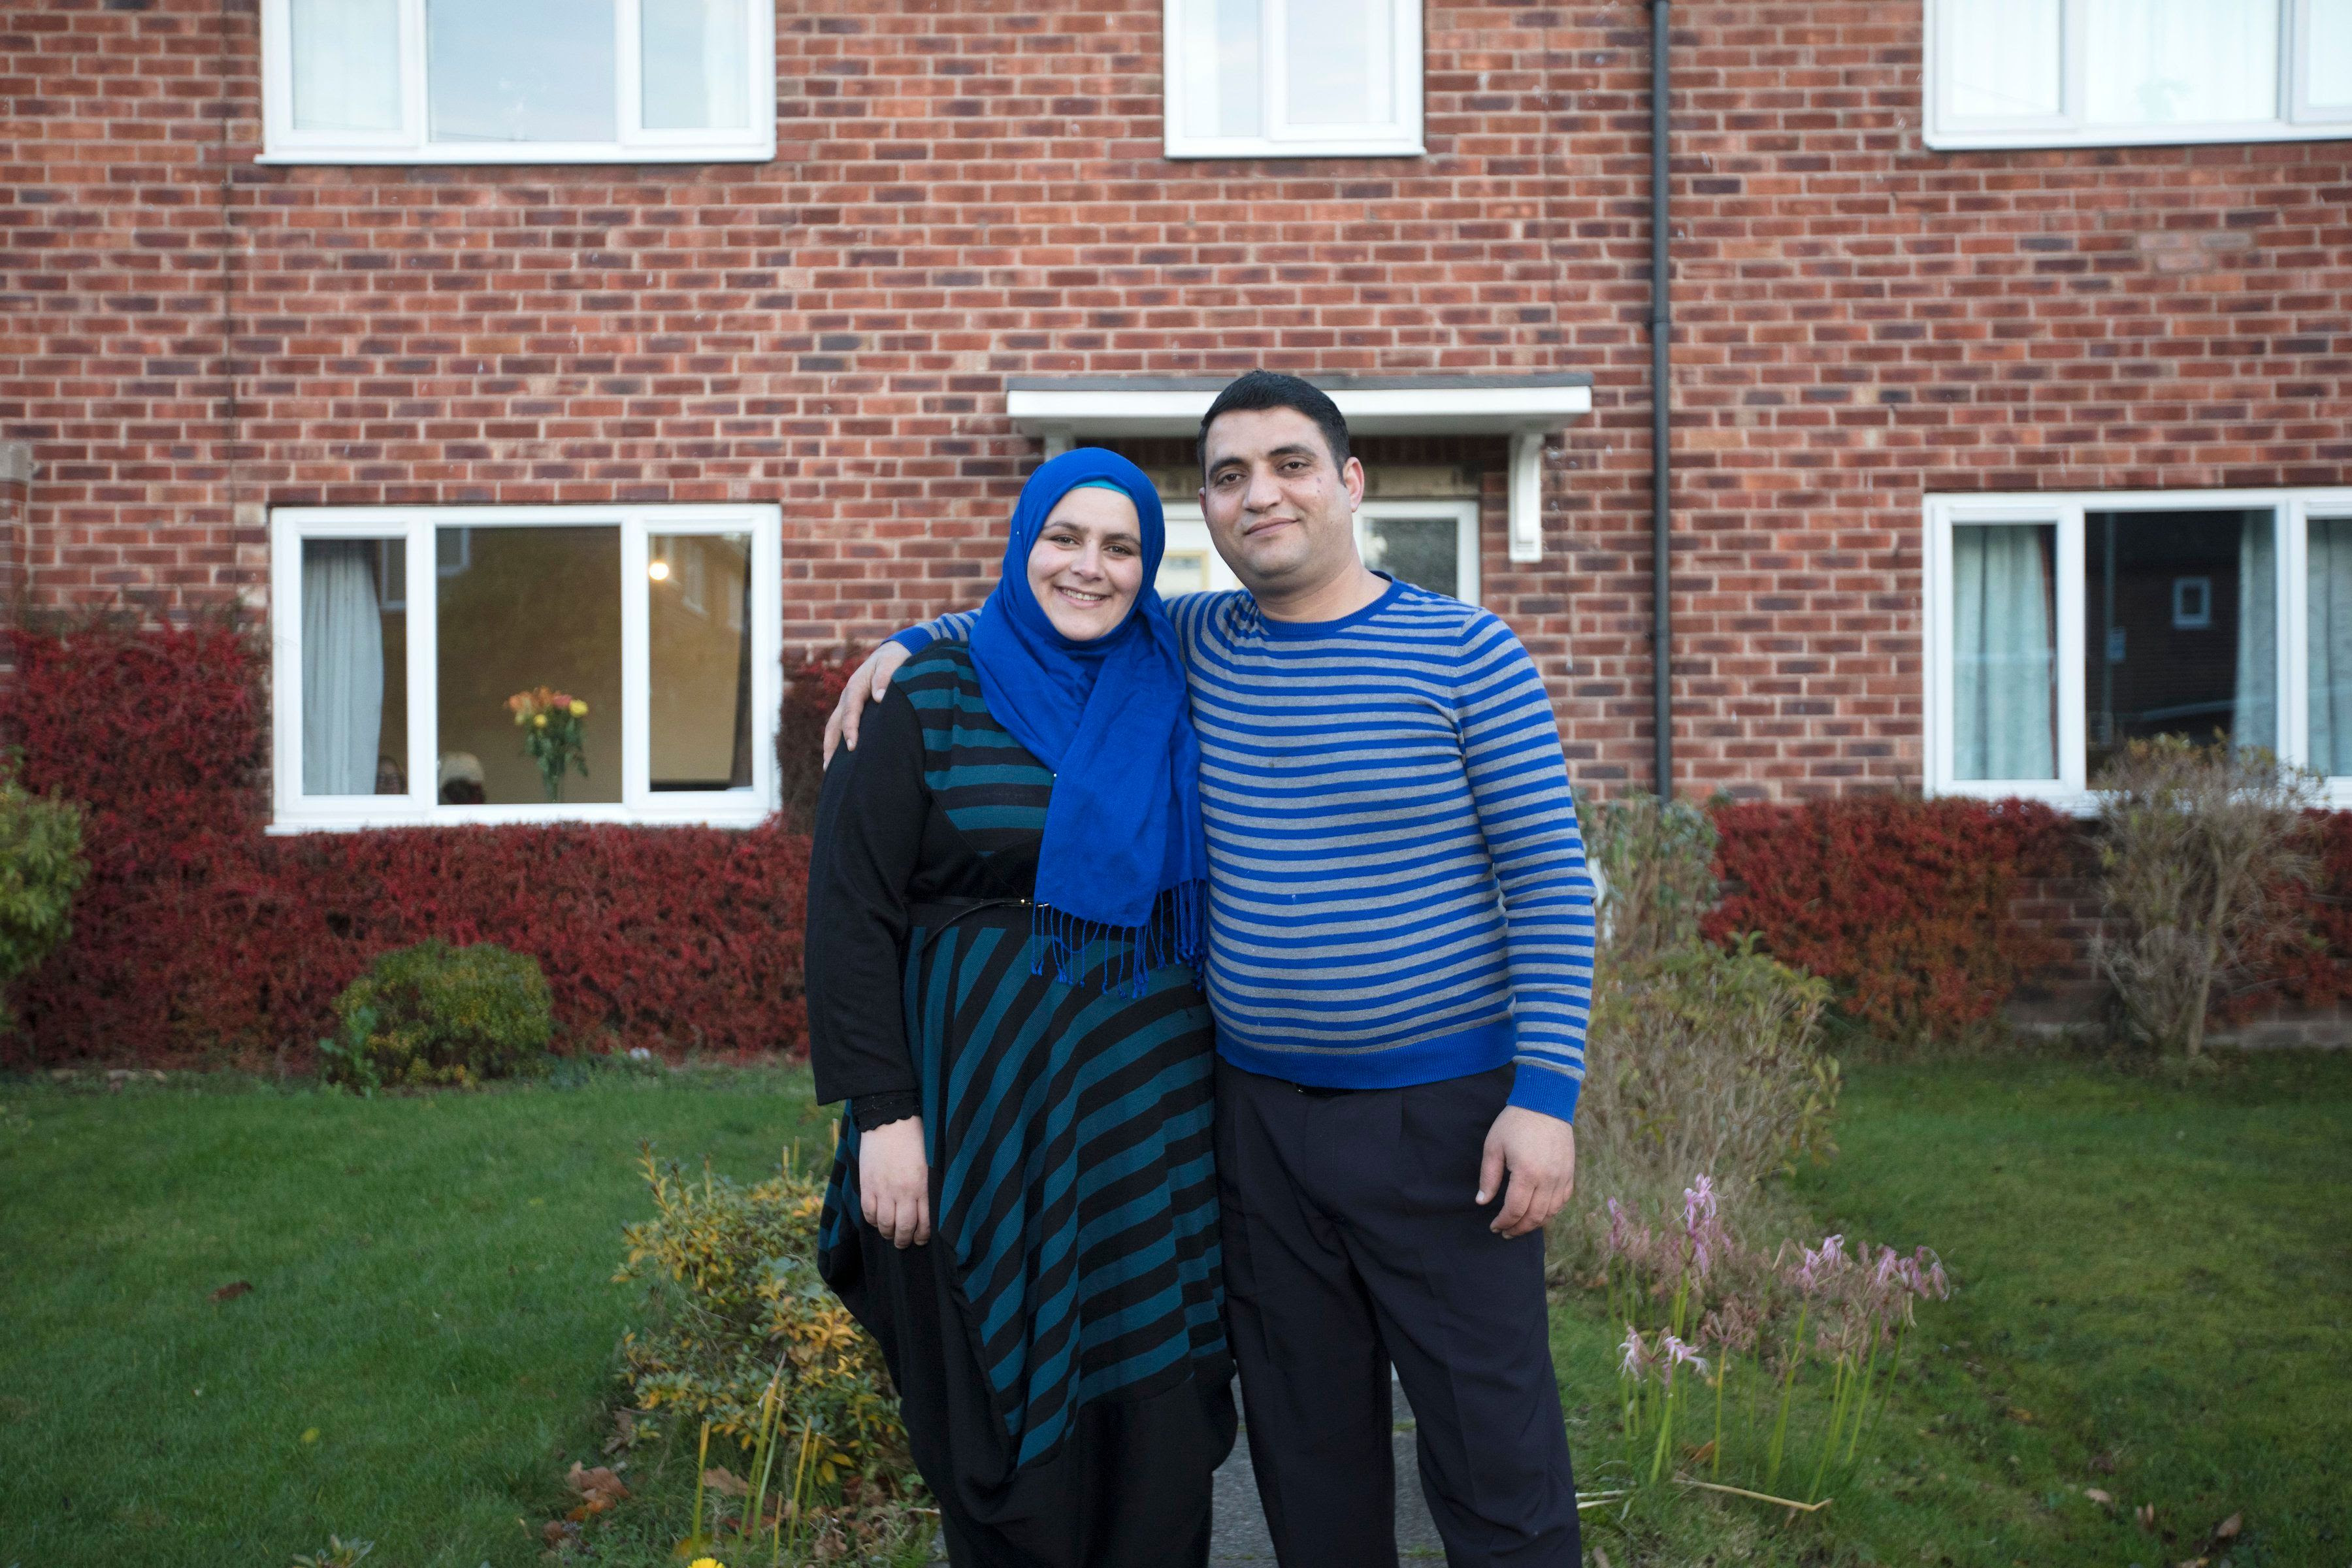 <strong>The families are among the first on the resettlement scheme to be interviewed and photographed.</strong>